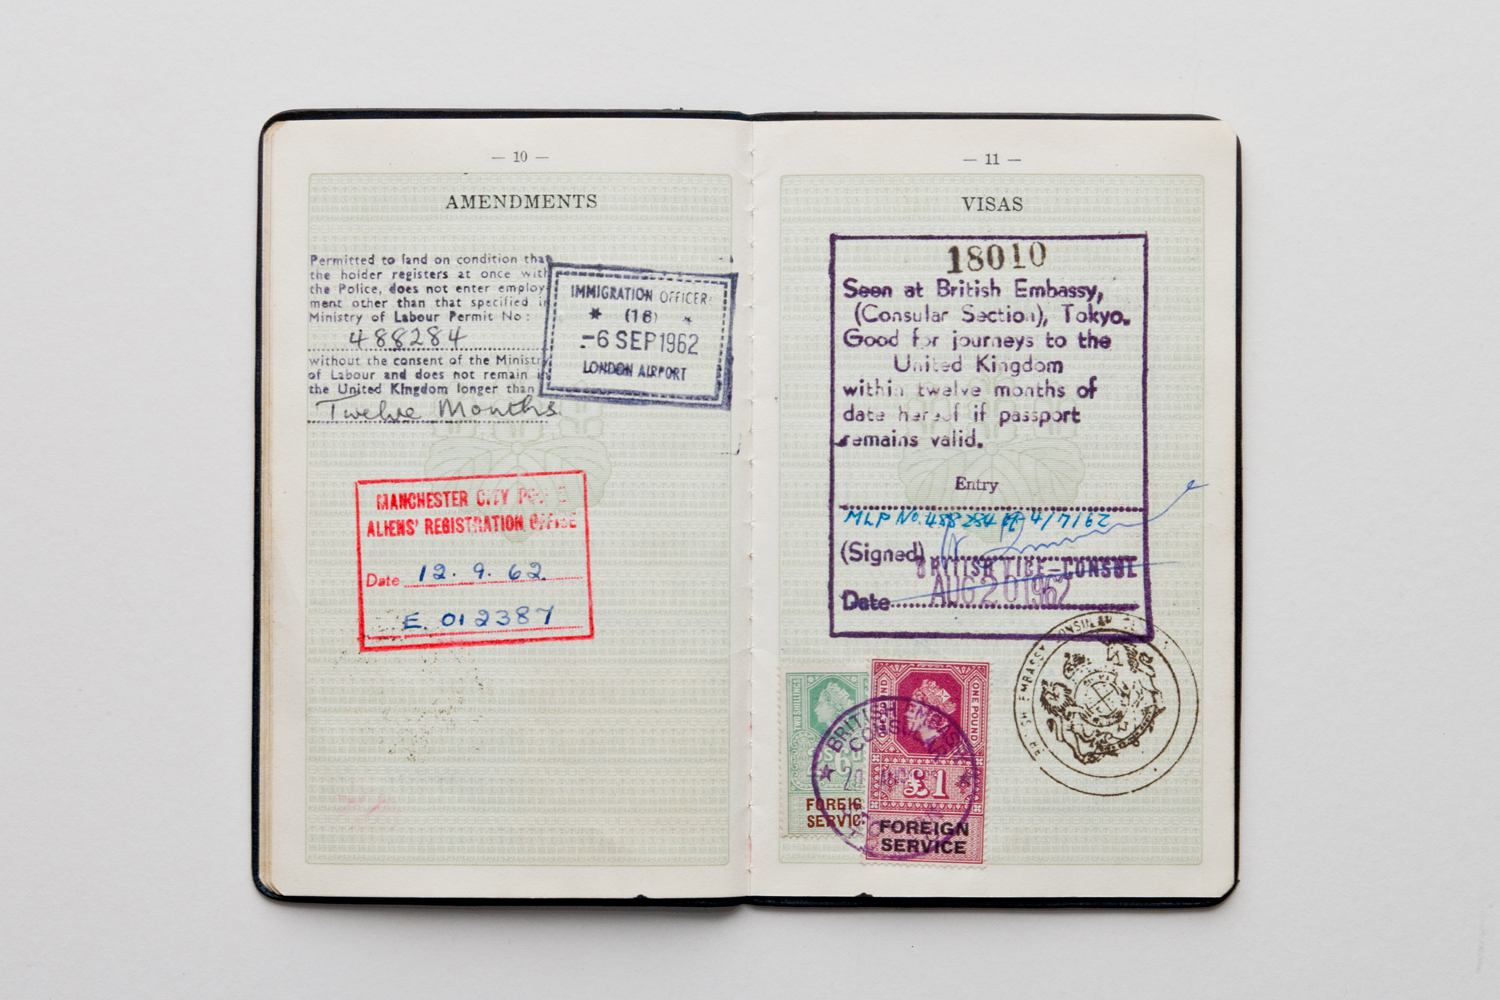 Stamps in his passport show he landed in London 6th Sept 1962, with Visa from British Embassy in Tokyo.  He was required to register as an alien with Manchester Poiice.